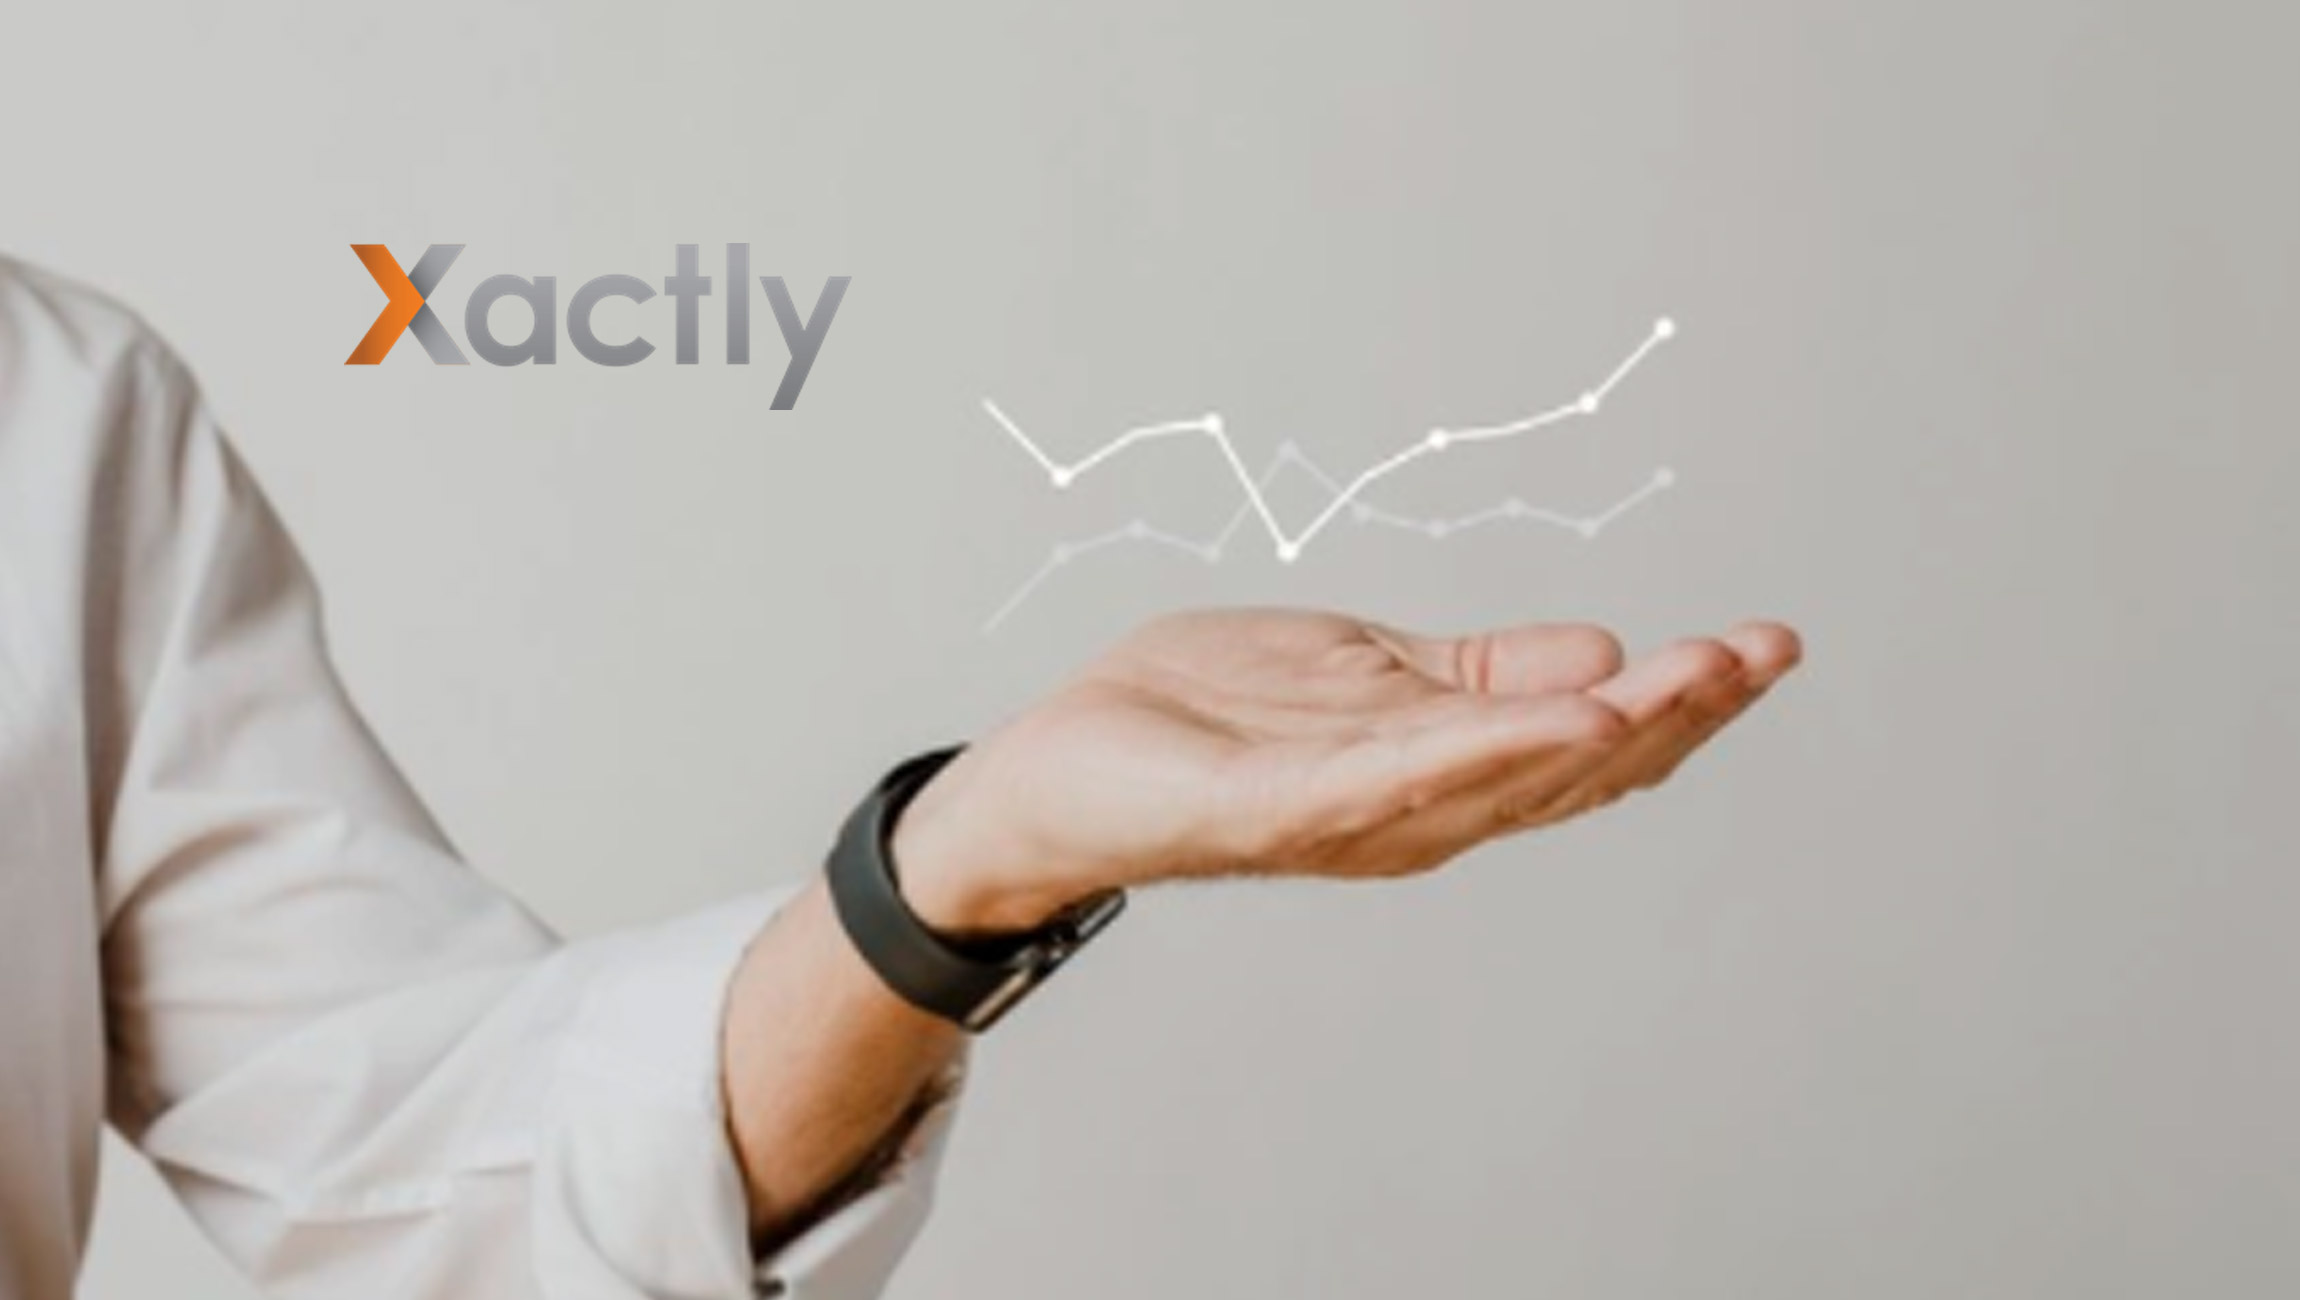 Xactly Taps World-Class Marketing Executive Johann Wrede as CMO to Spearhead Innovative Brand Initiatives and Accelerate Global Growth